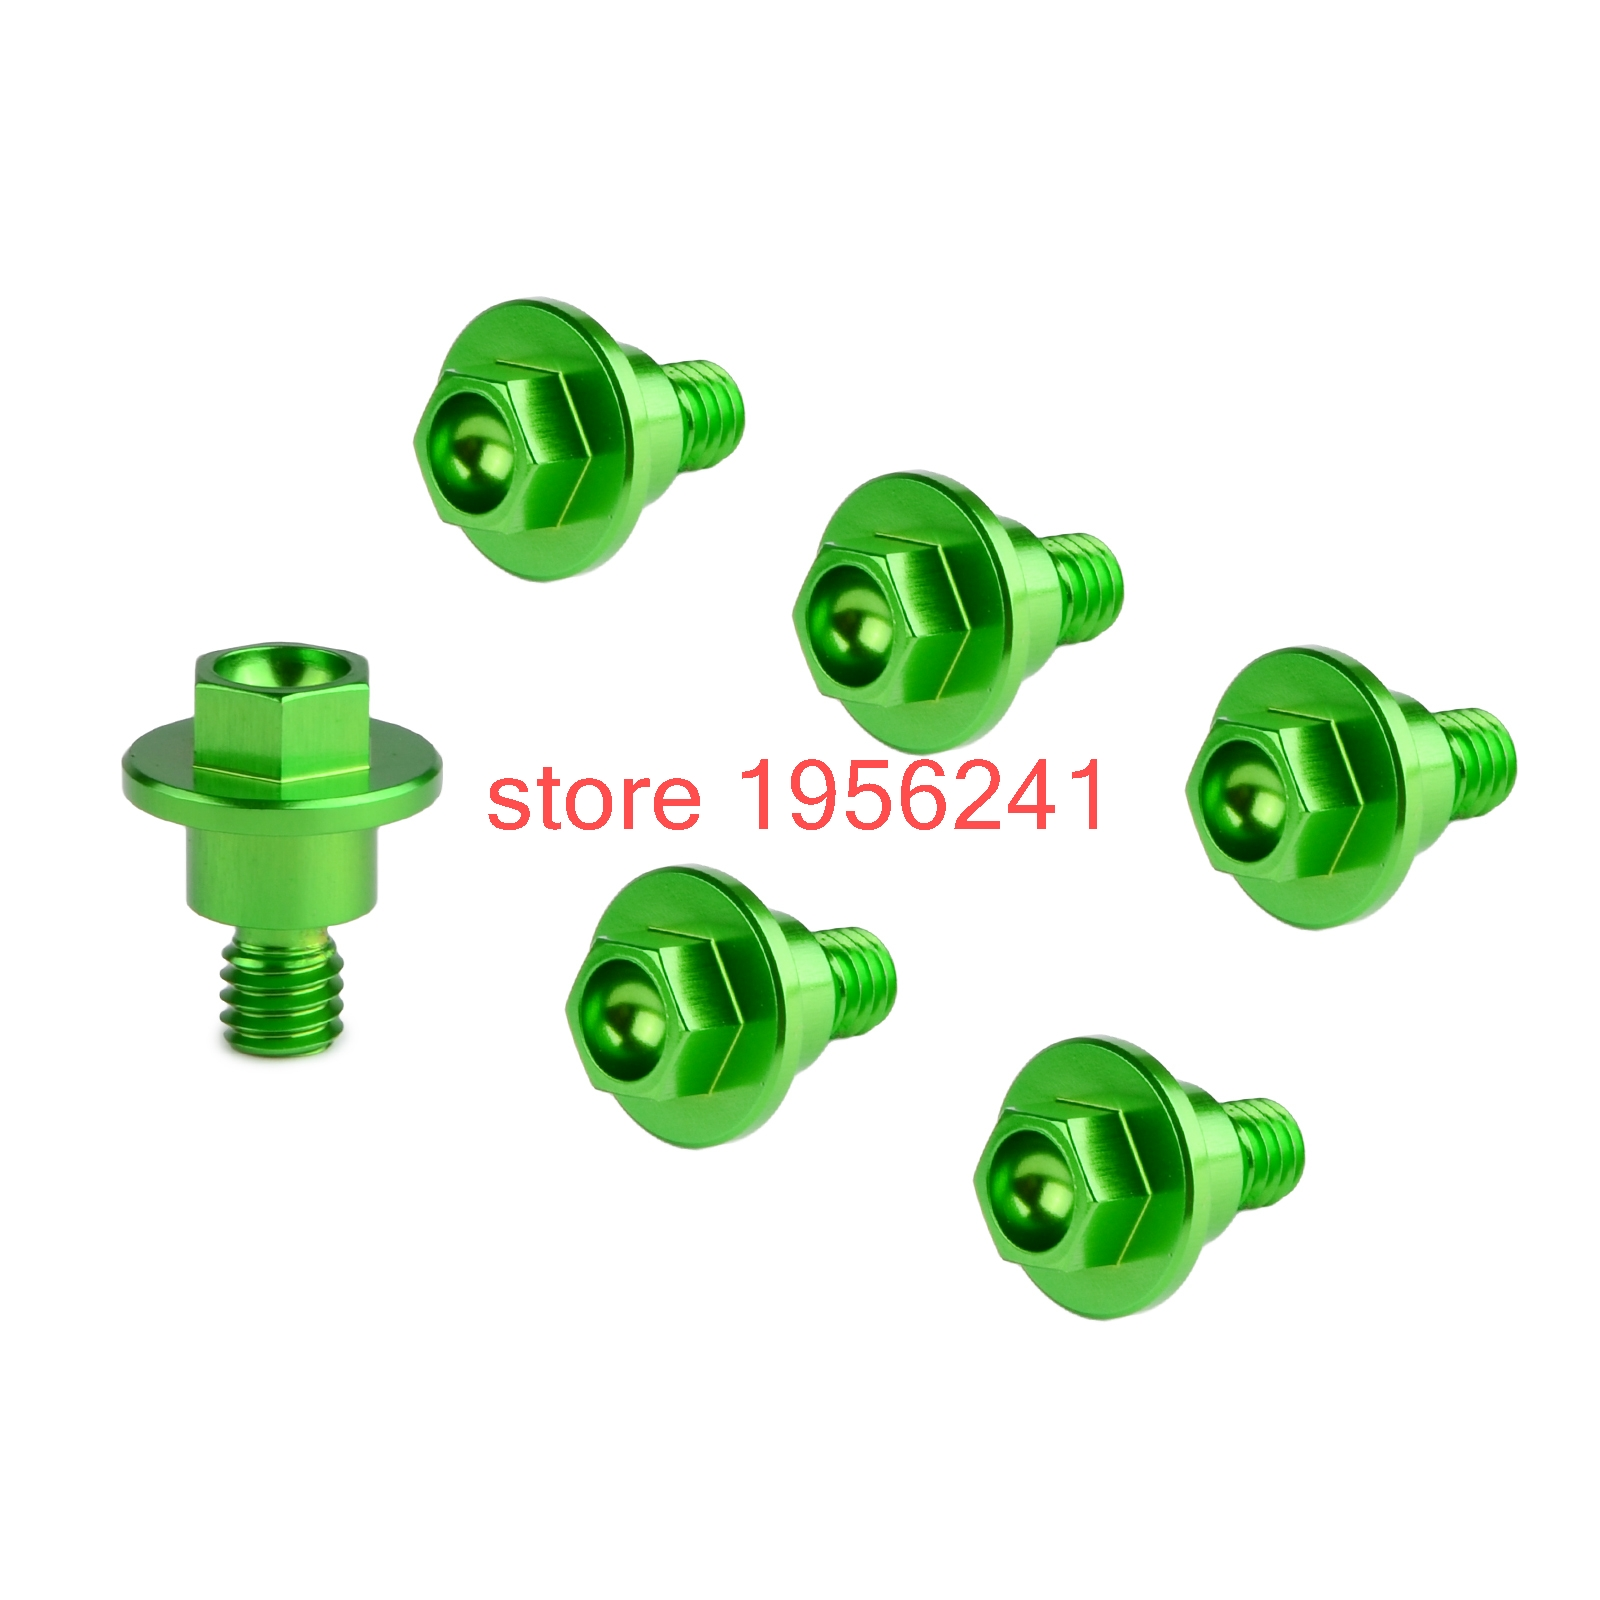 6PCS CNC Front Fork Guard Bolts Screw For Kawasaki KX8 KX85 KX125 KX250 KX250F KX450F KLX450R KLX250 D-Tracker KX 250 450 F